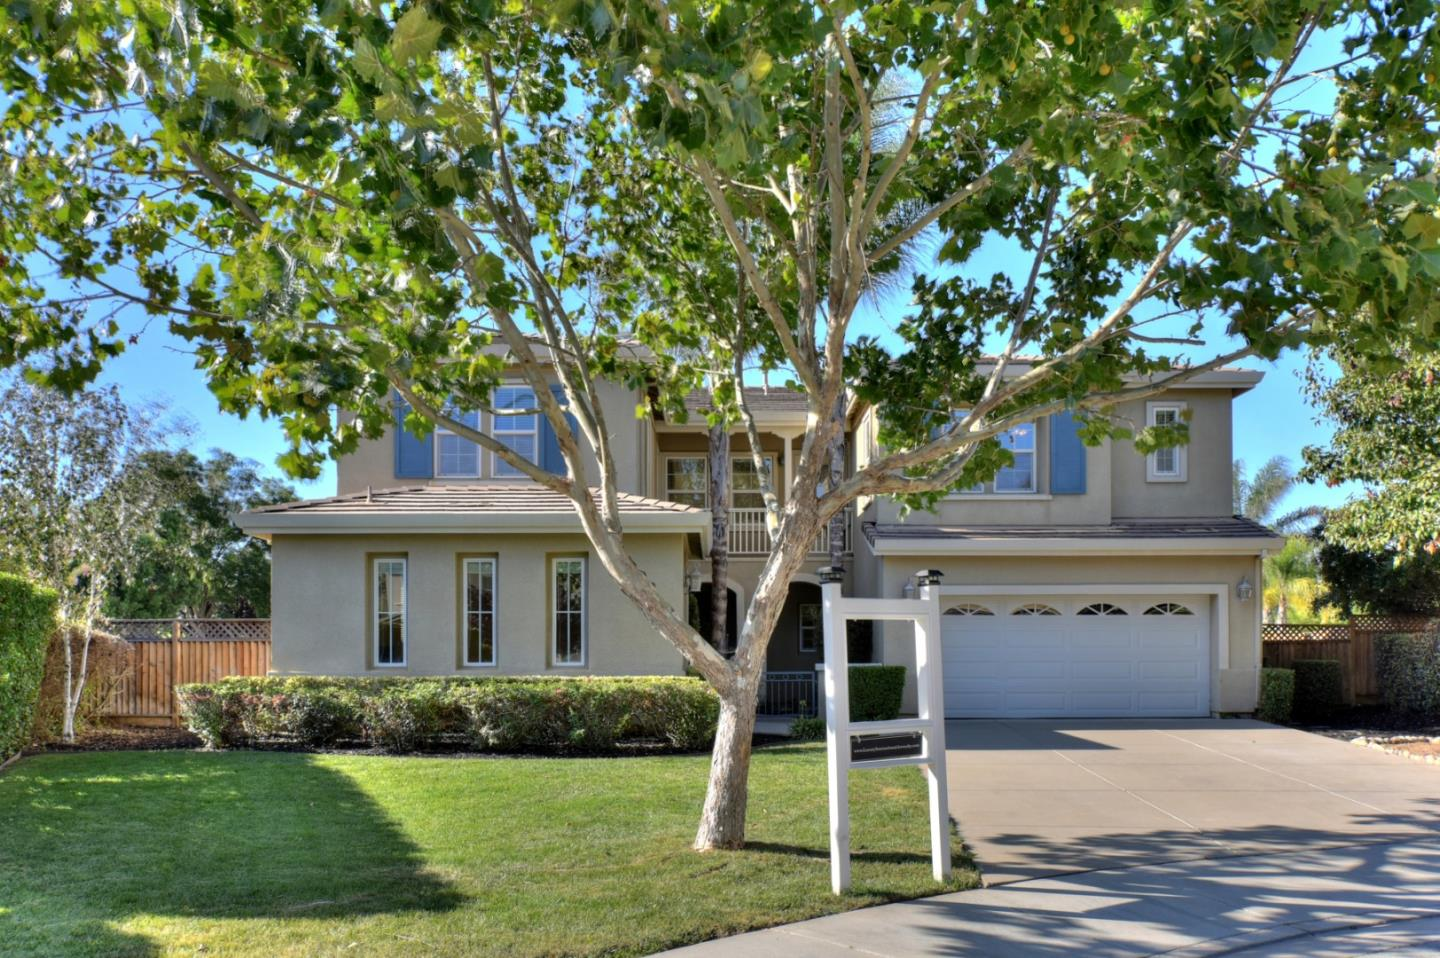 141 Basil CT, Morgan Hill, California